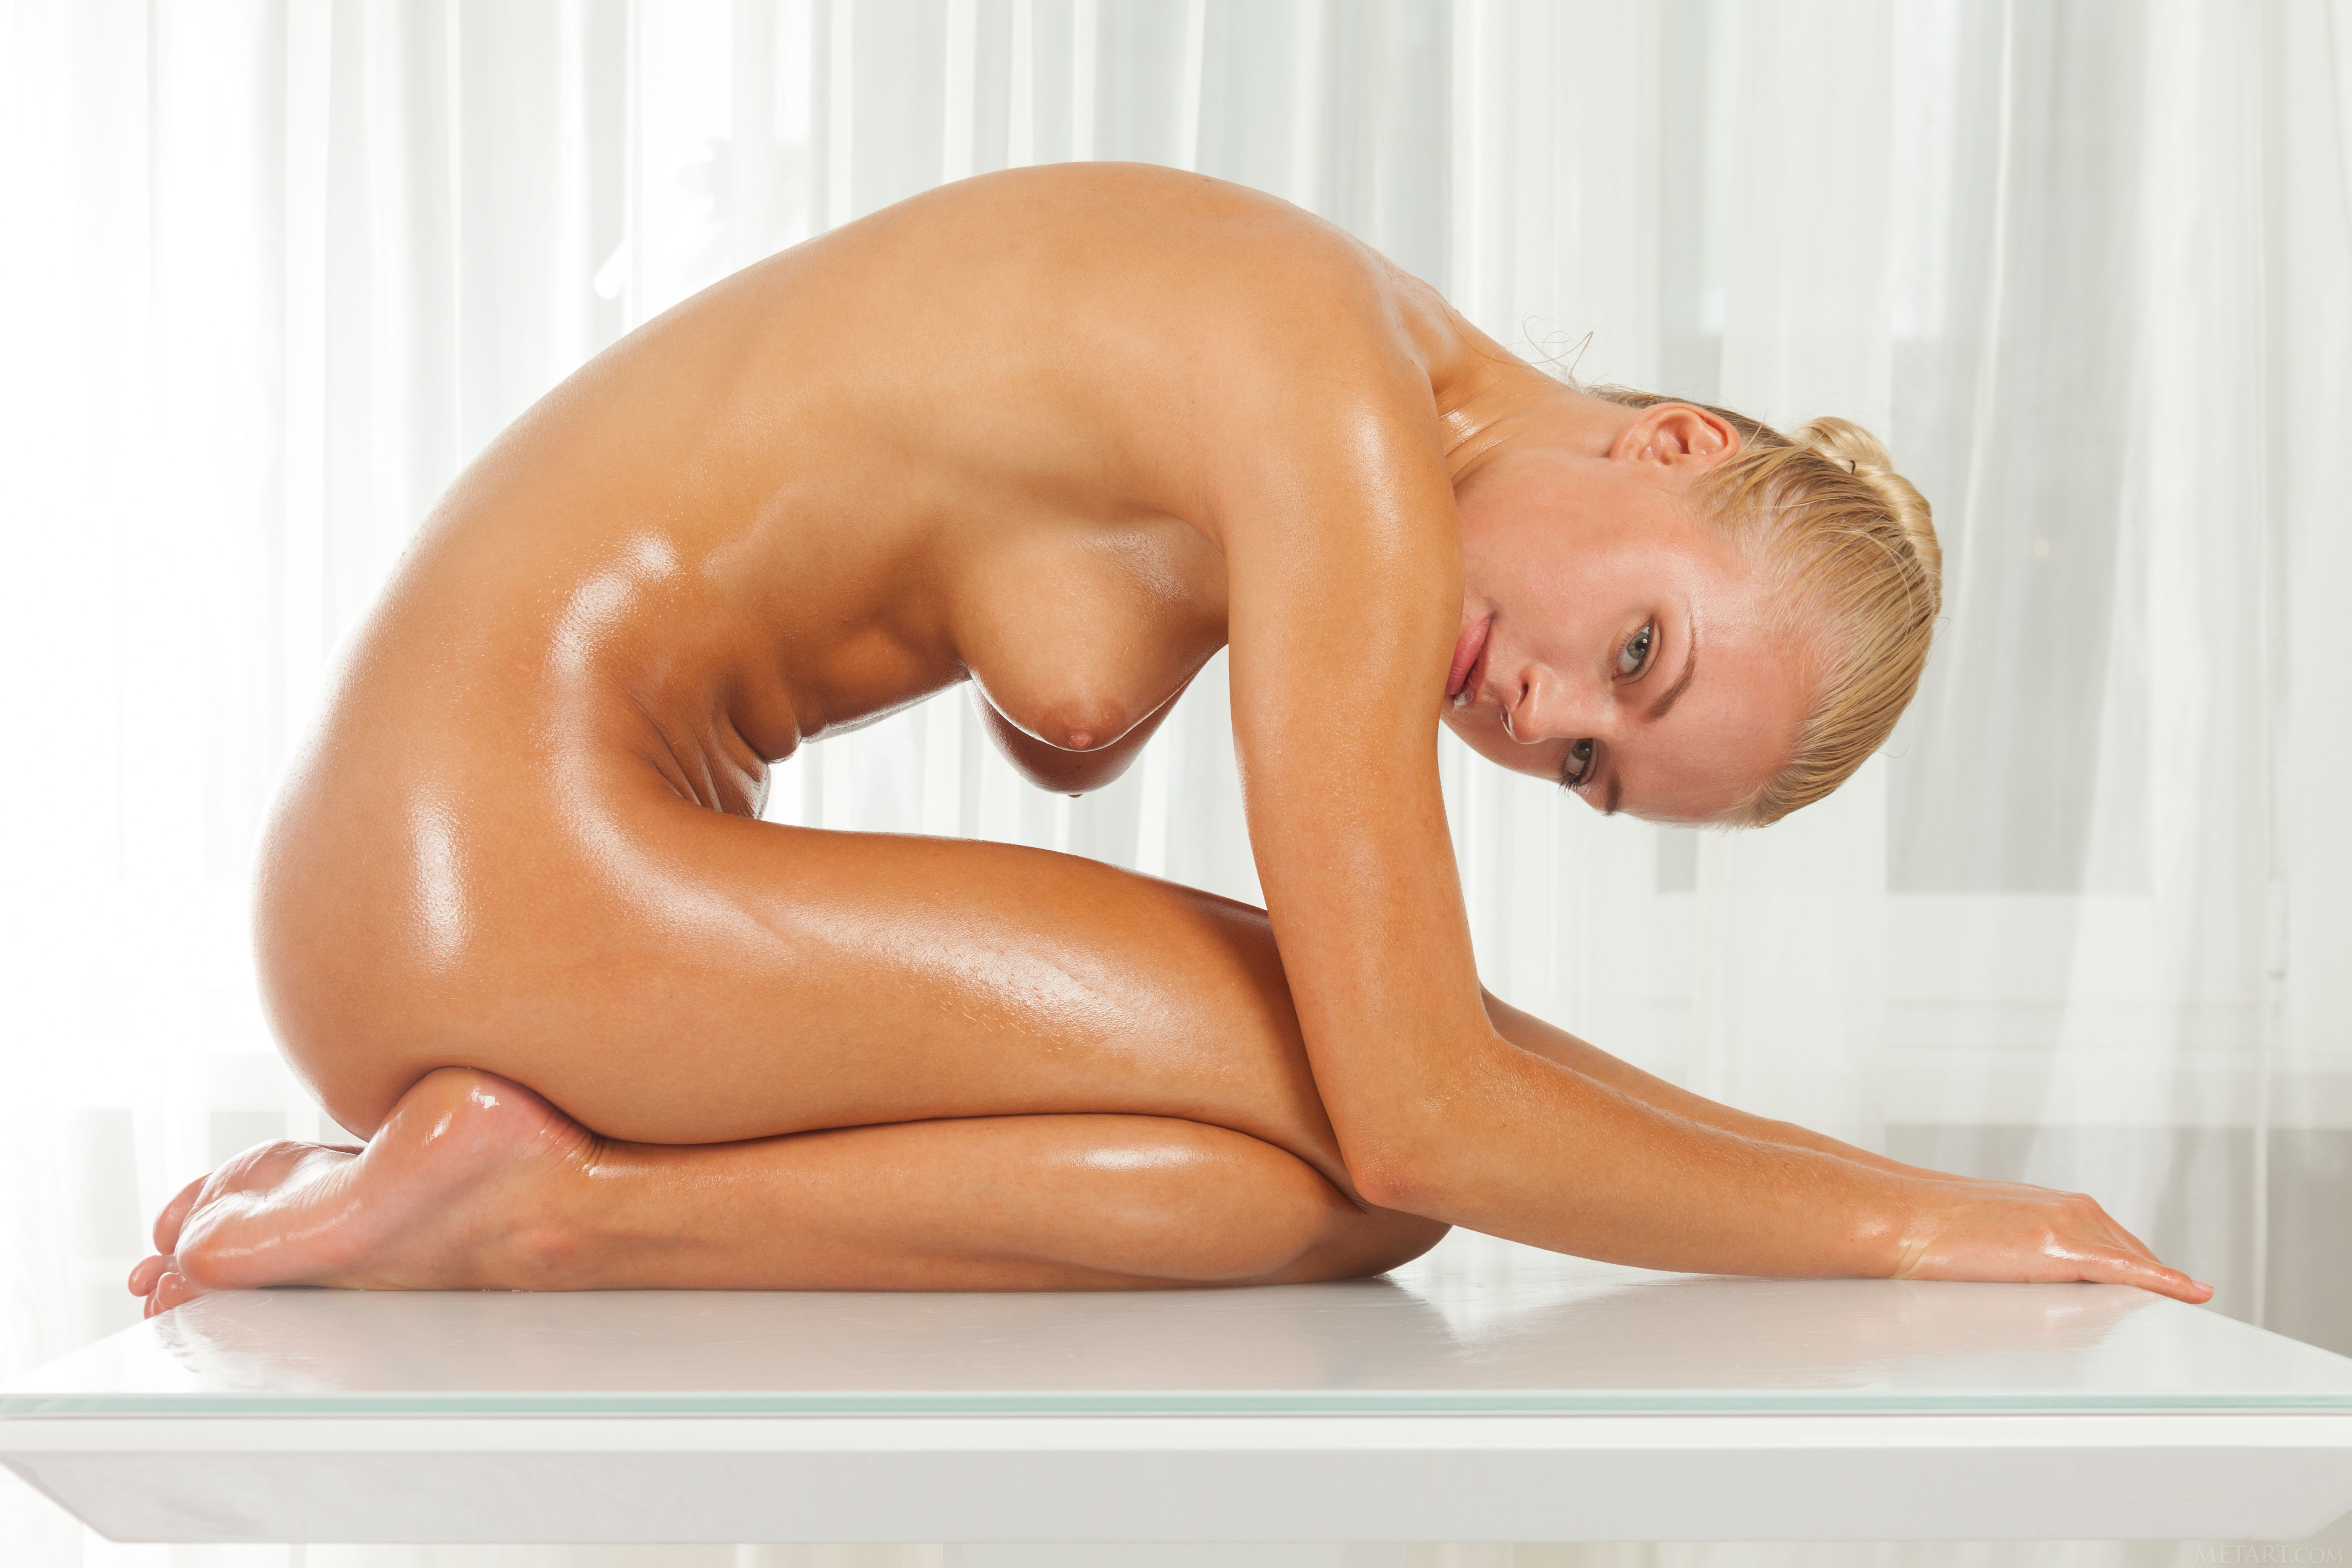 Naked and oily